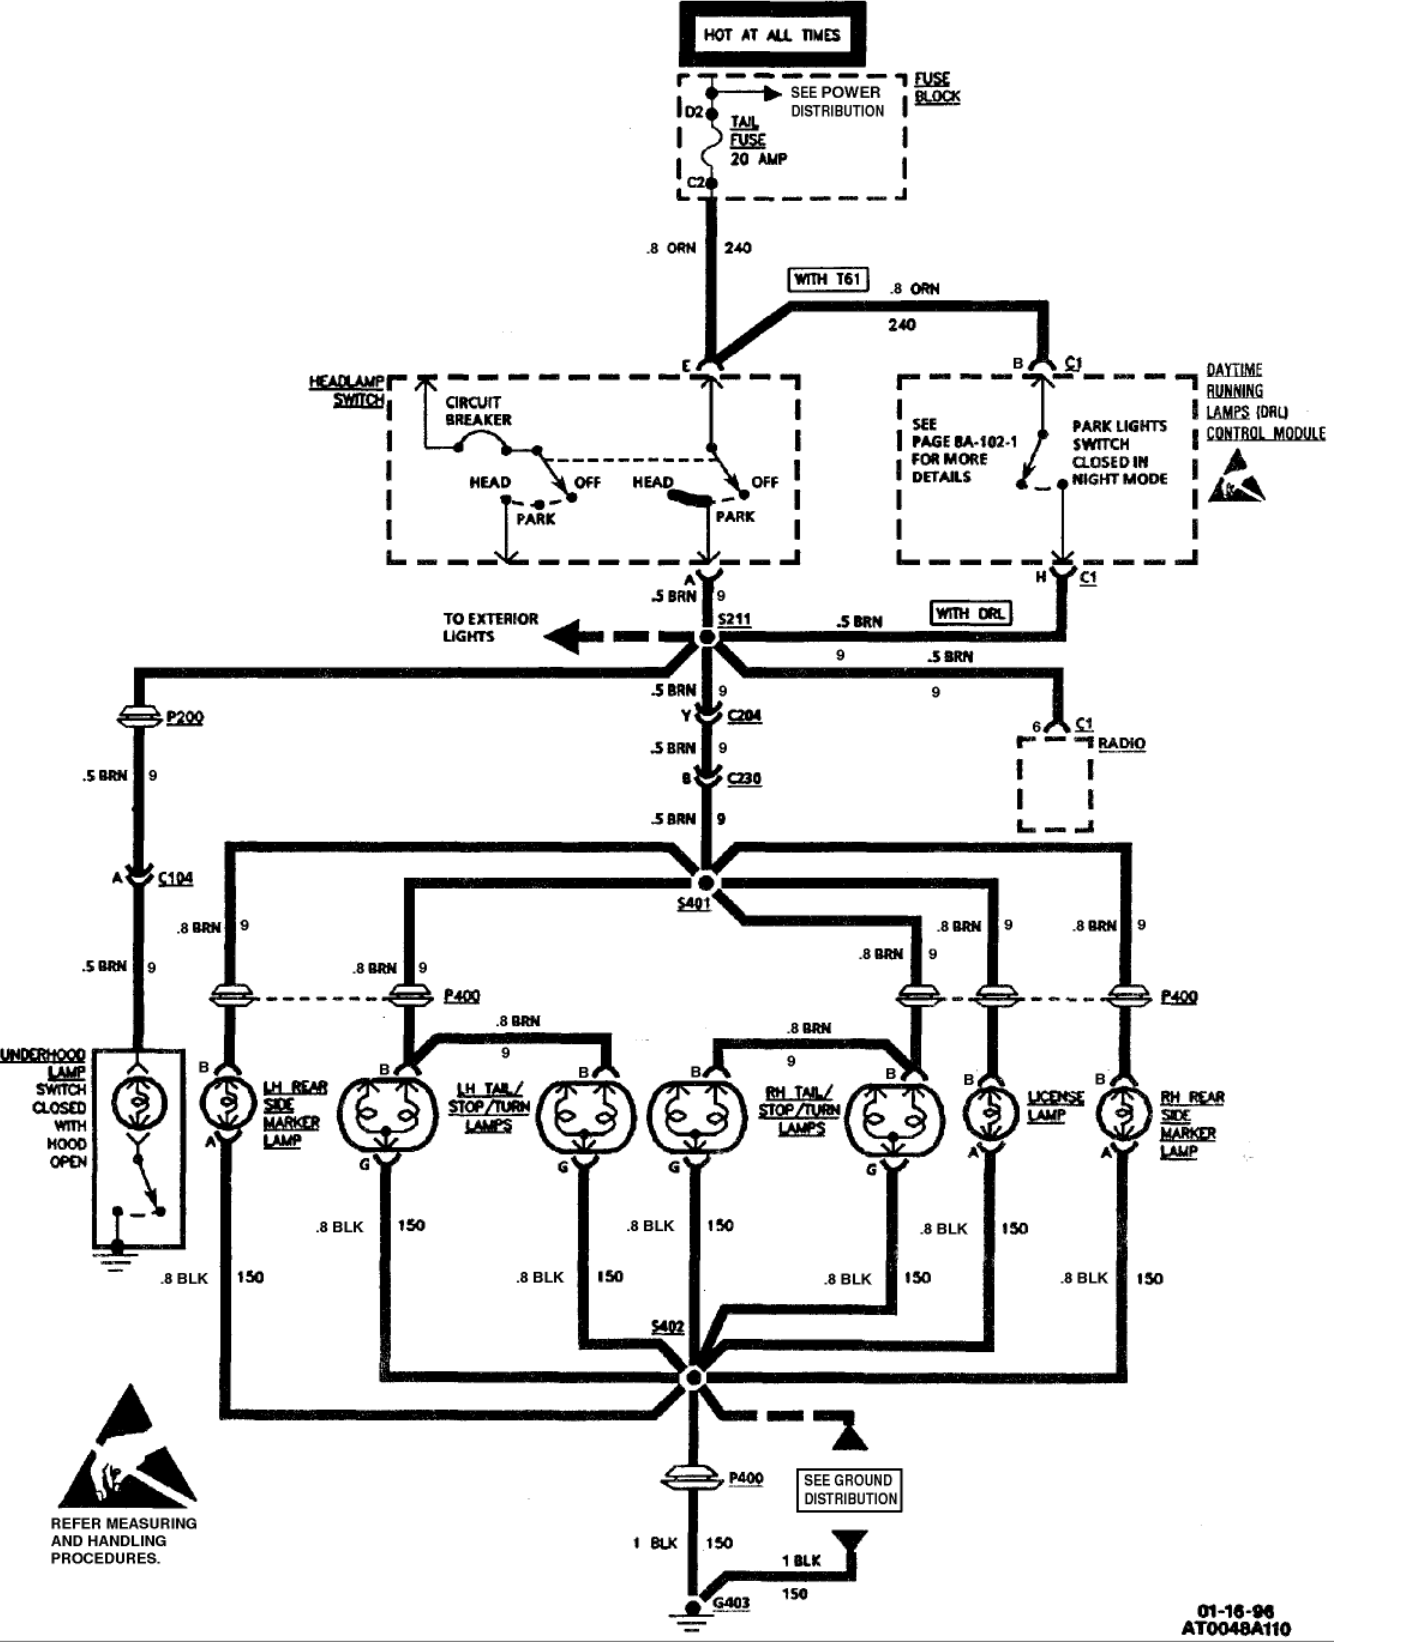 Oldsmobile Ciera Wiring Diagram on diagram of 1992 oldsmobile bravada motor, diagram of a 1994 oldsmobile engine, 1994 oldsmobile cutlass ciera,